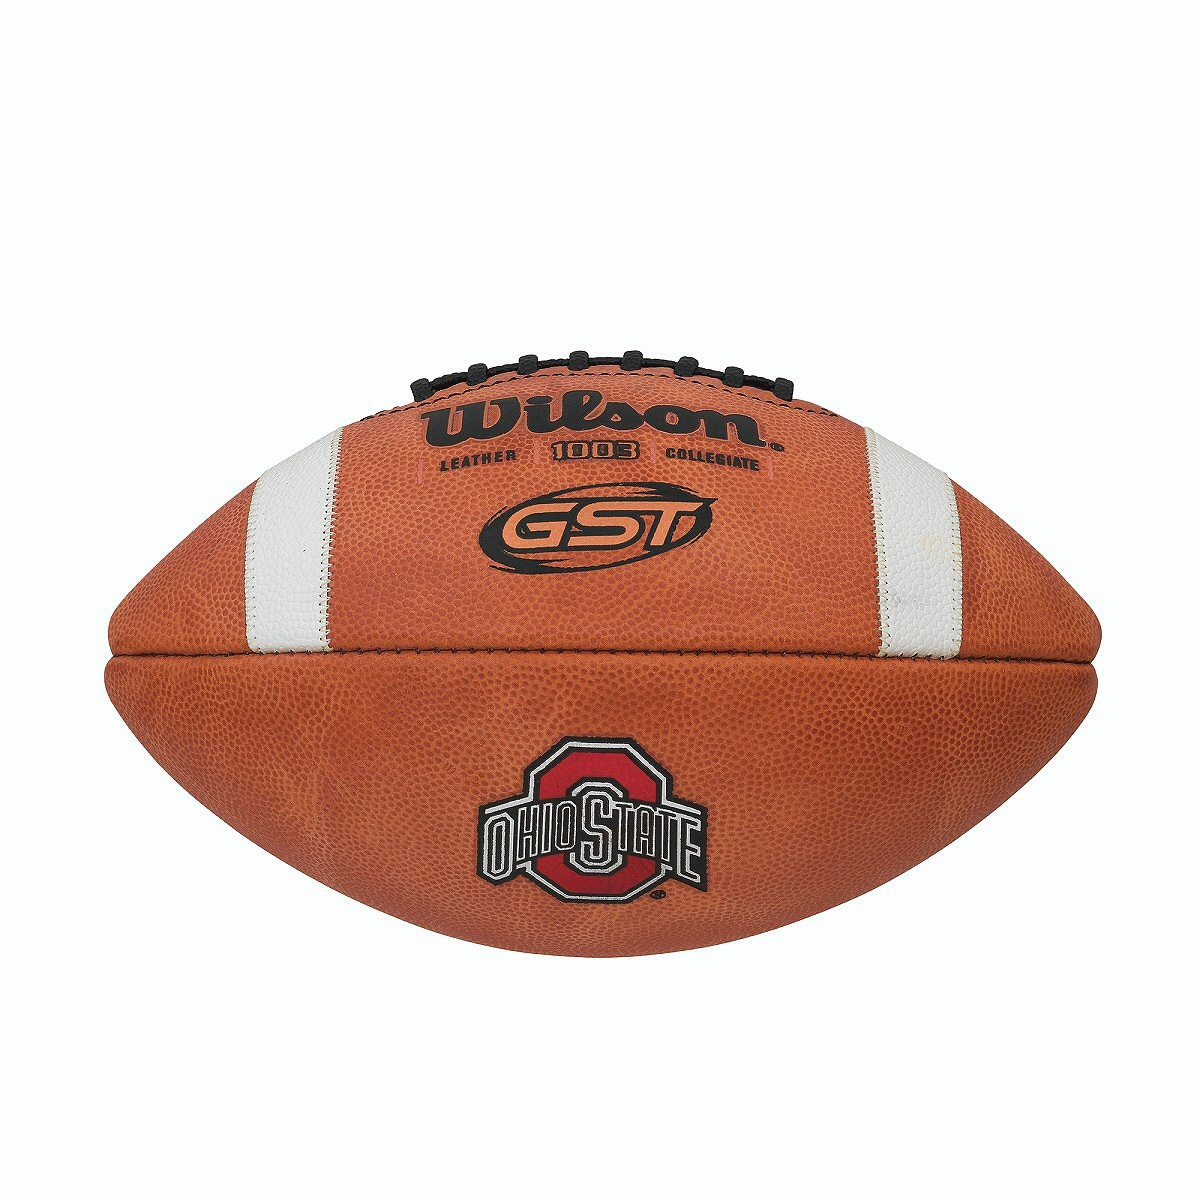 2014 Ohio State Buckeye Football Official On-Field Game Ball